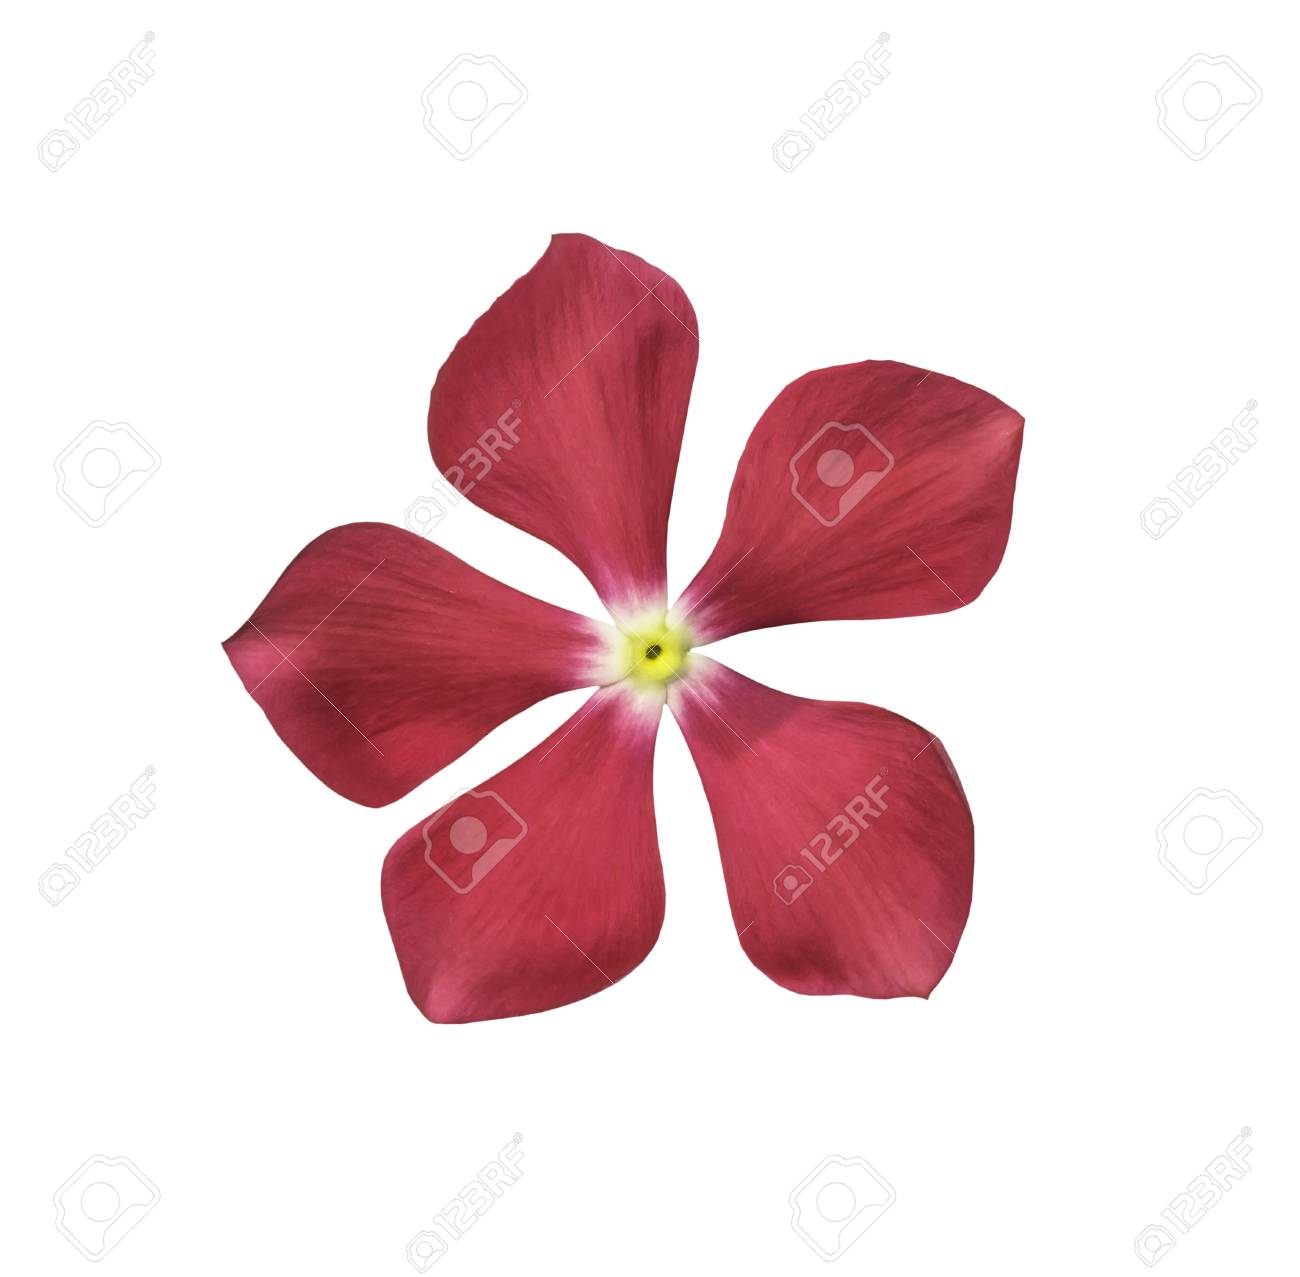 Single Pink Flower Isolated On White With Clipping Path Stock Photo